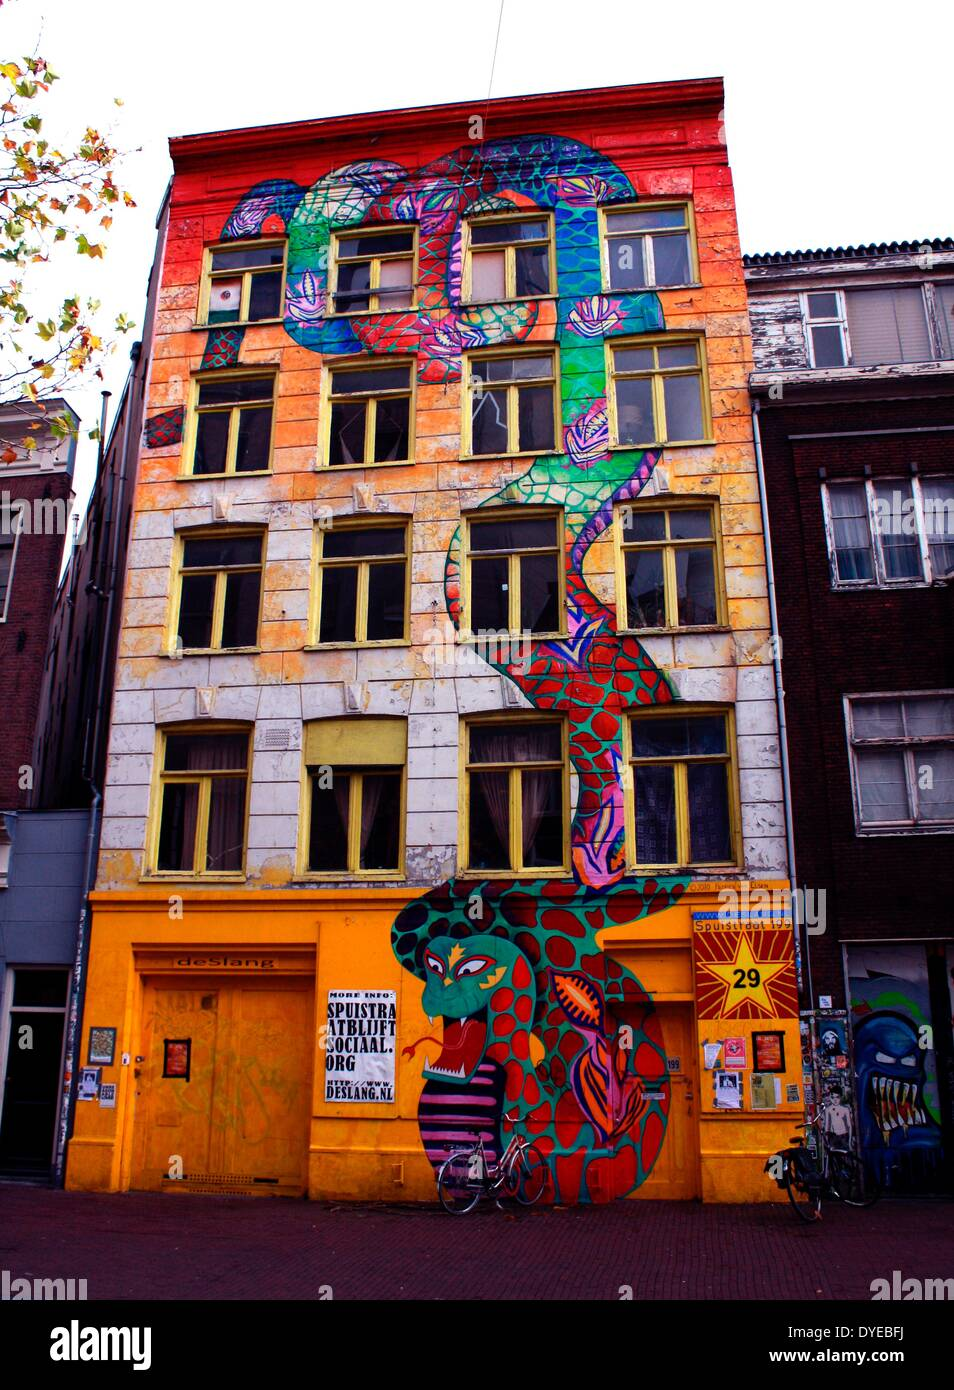 Graffiti wall amsterdam - Graffiti Covering The Front Of A Five Storey Building In Amsterdam Holland Stock Image